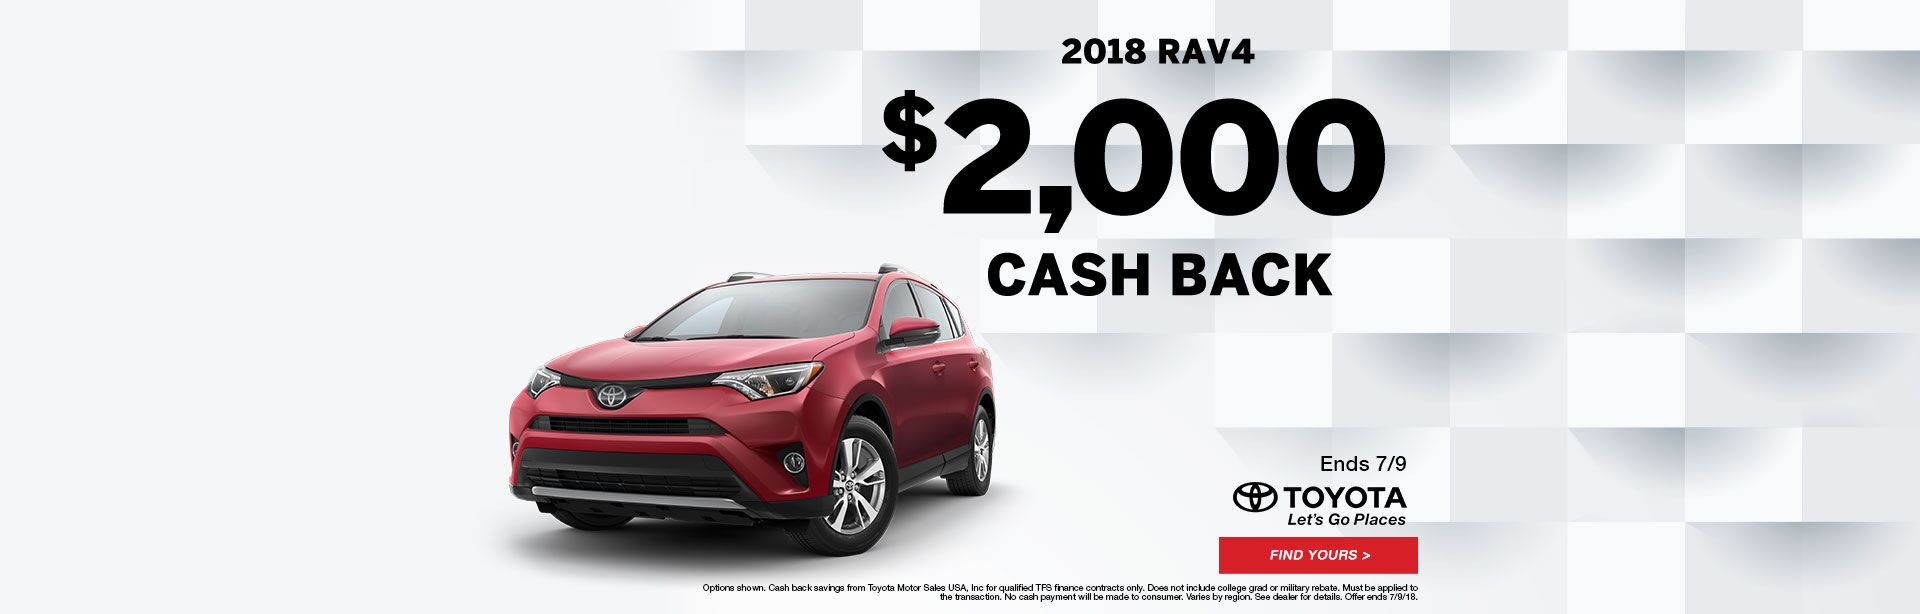 Rav4 Cash Back